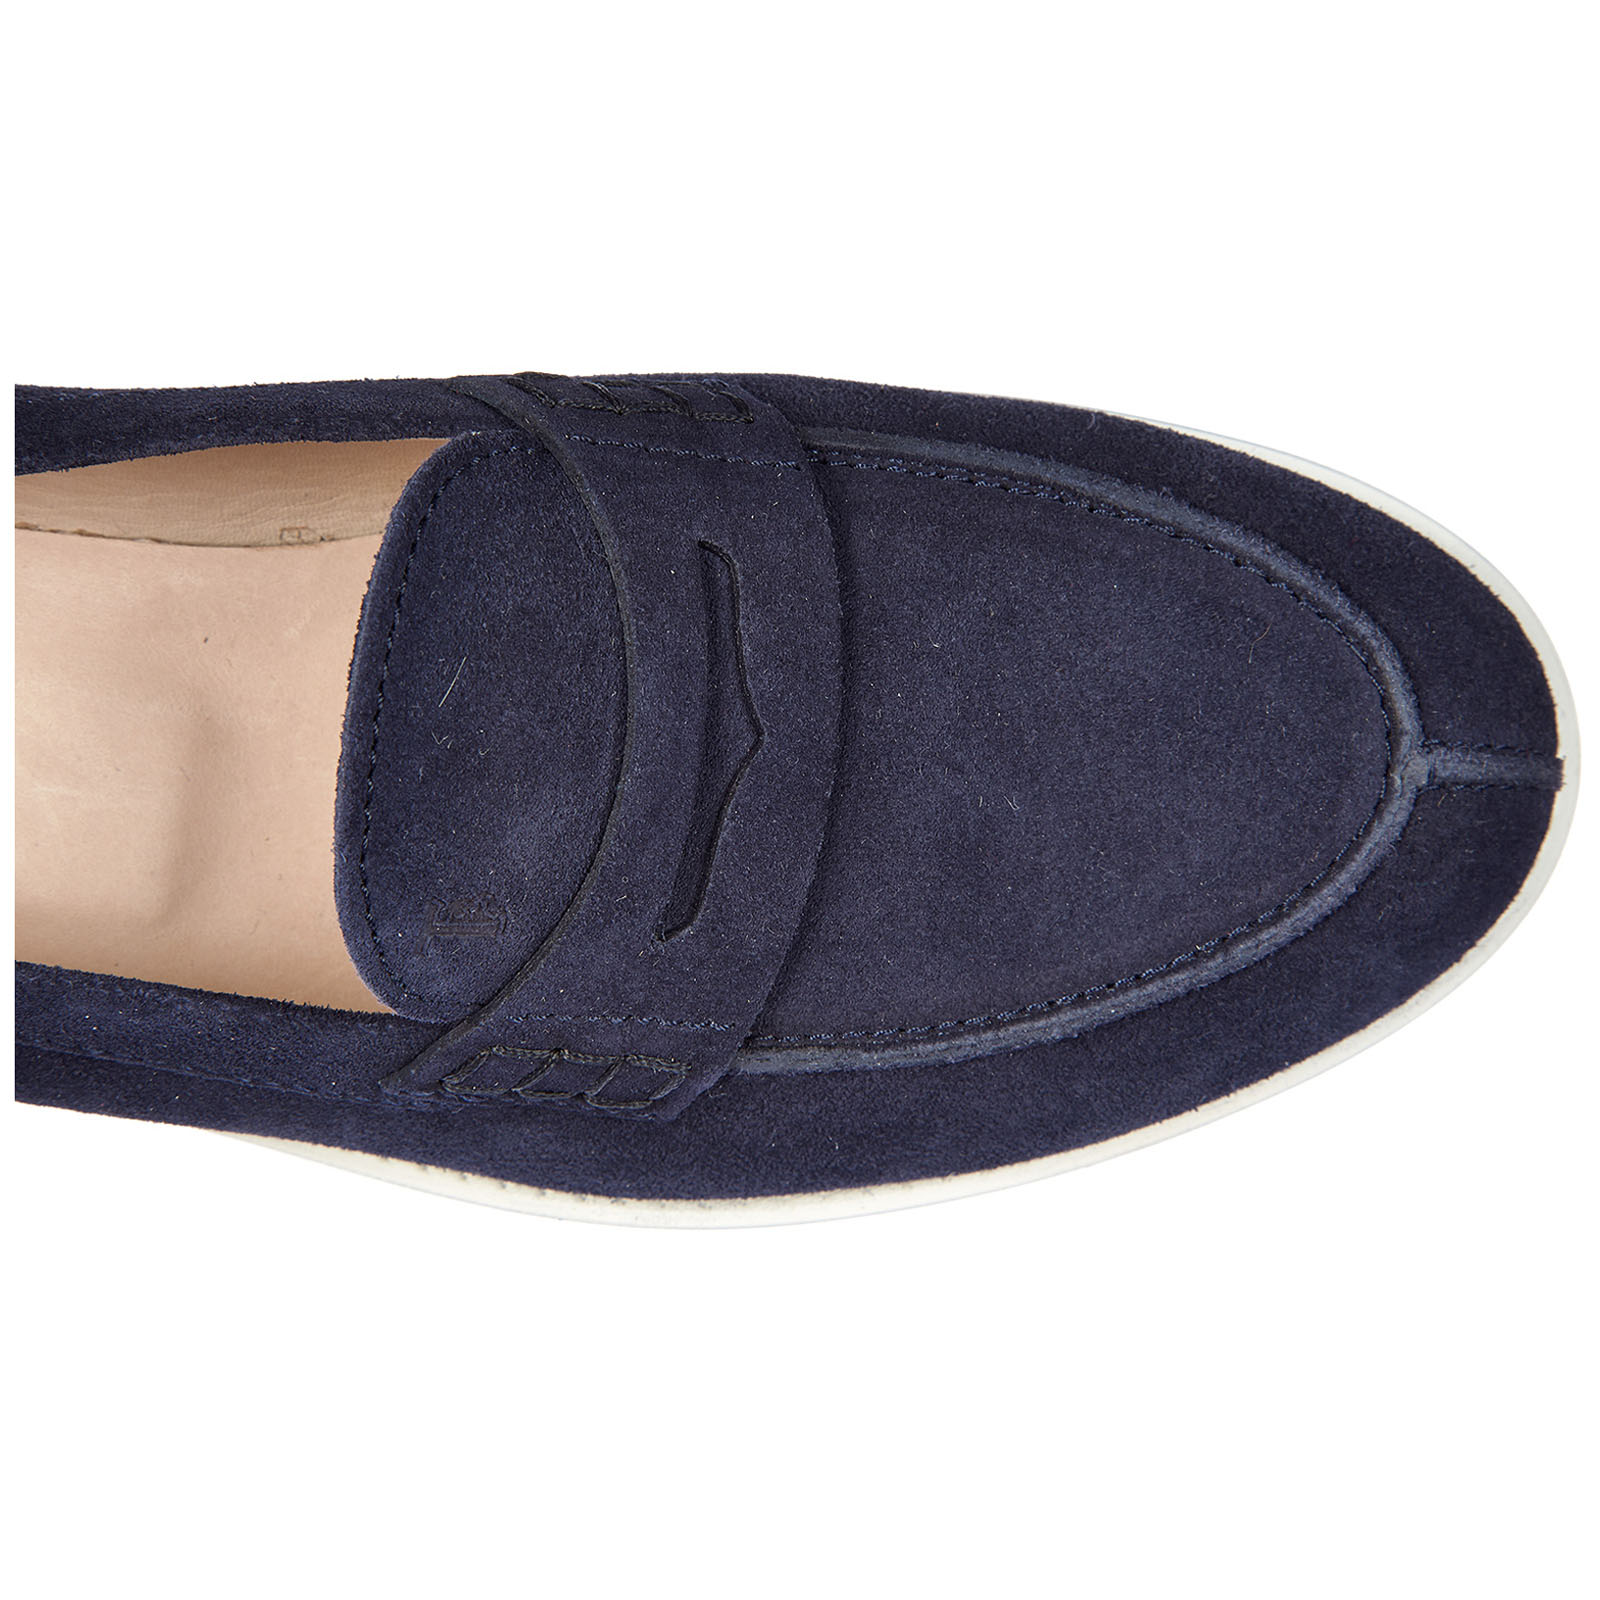 Damen wildleder mokassins slipper gomma vk